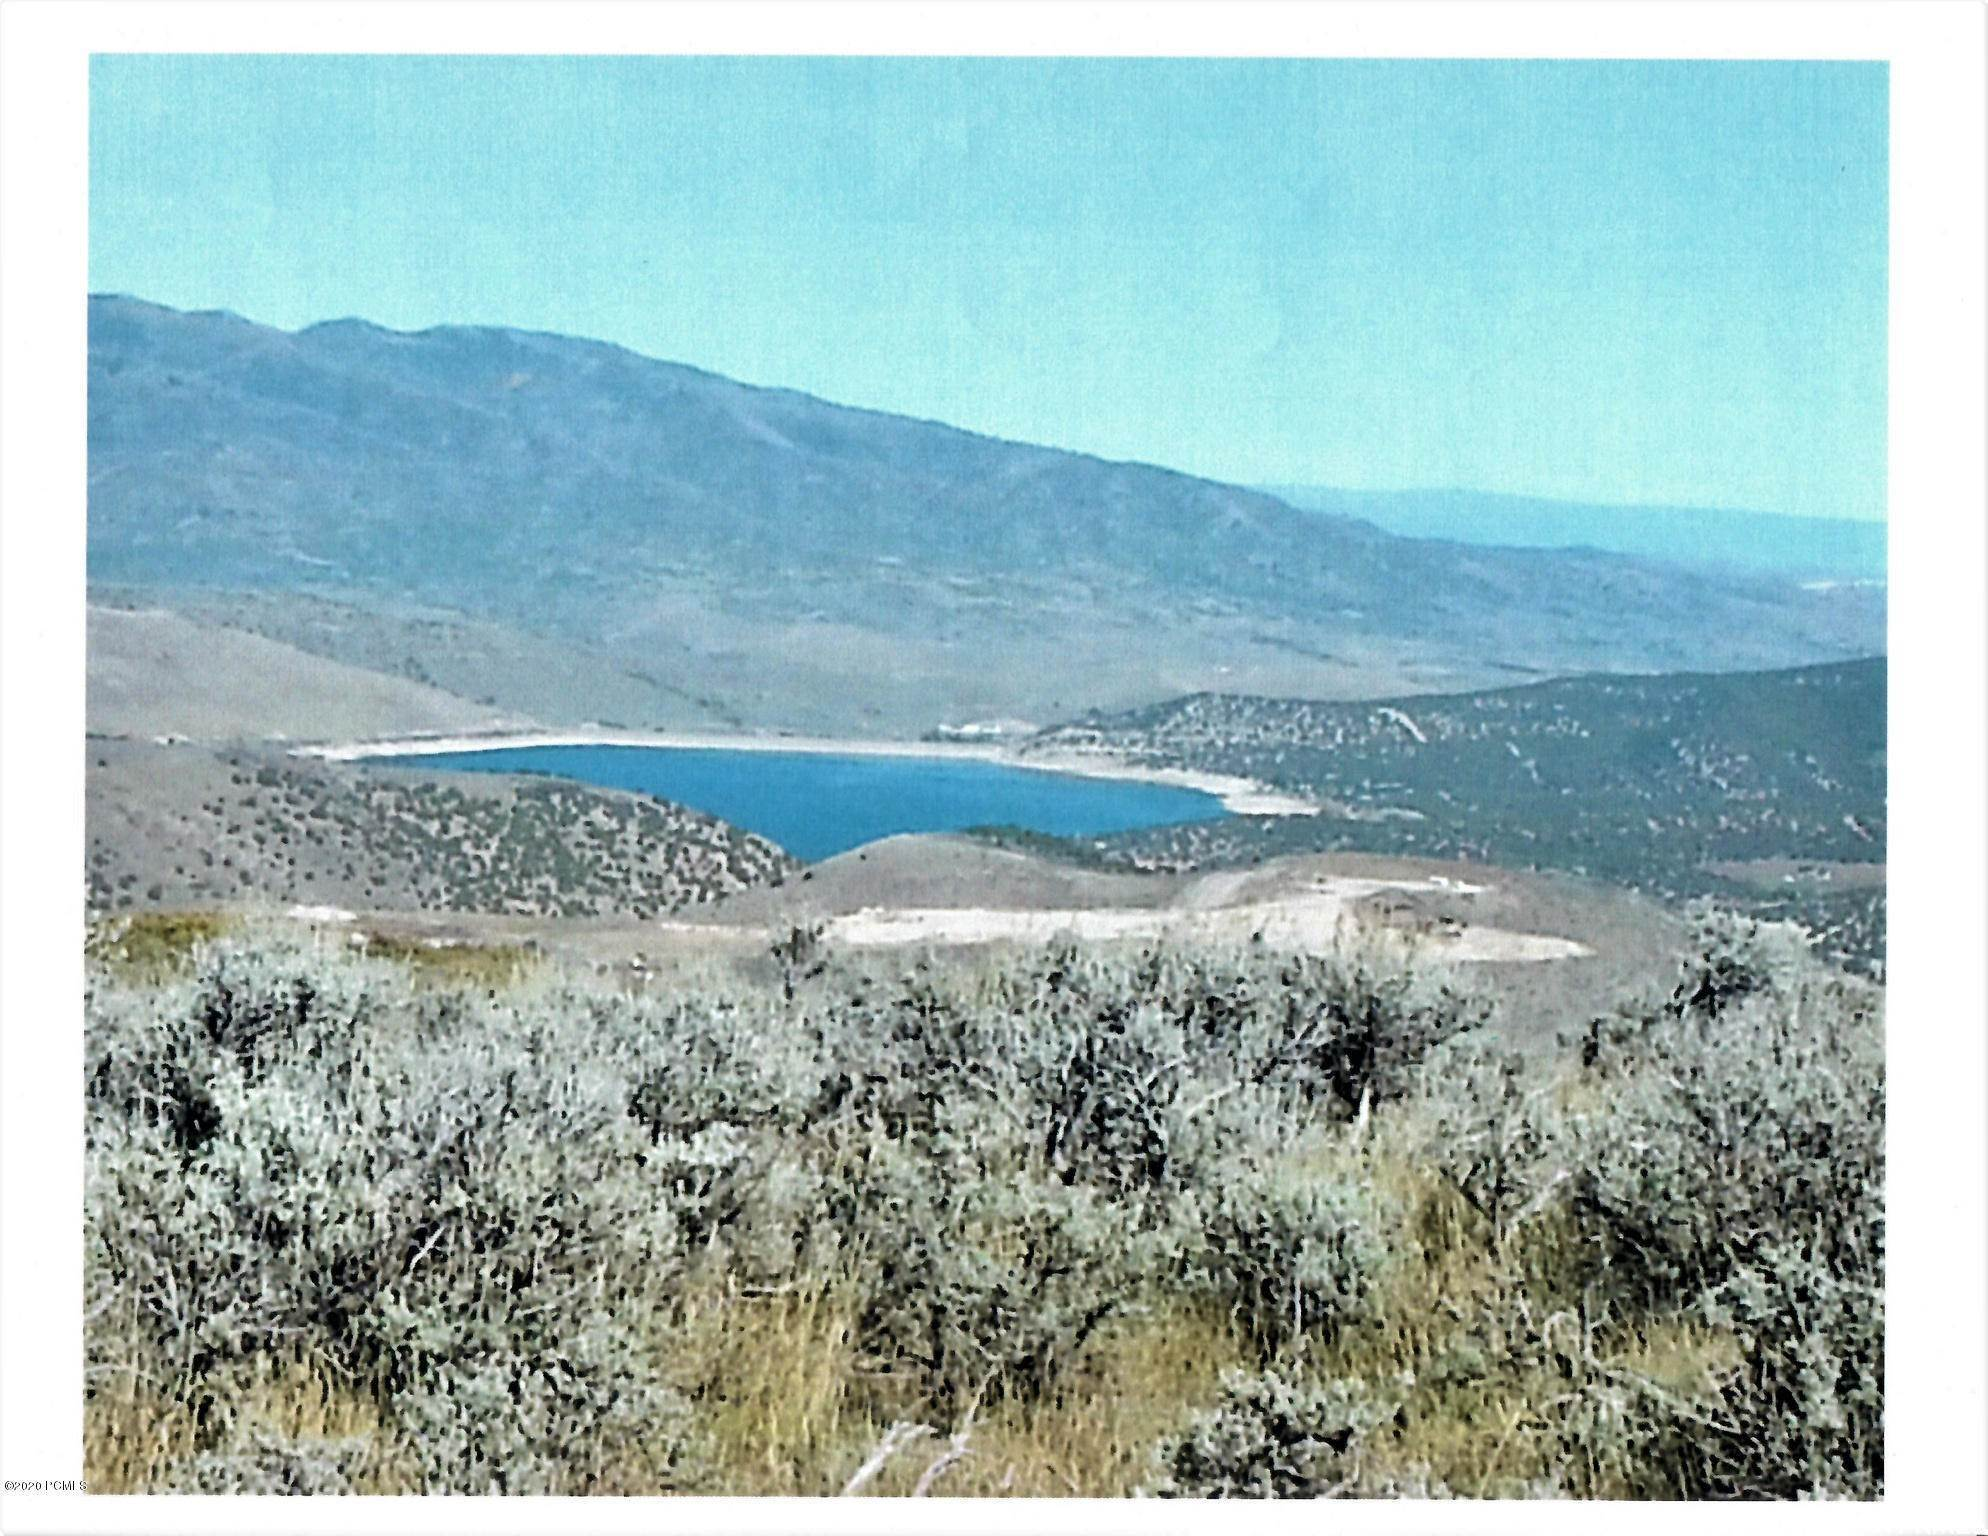 Residential Lots & Land for Sale at Peoa, Utah United States